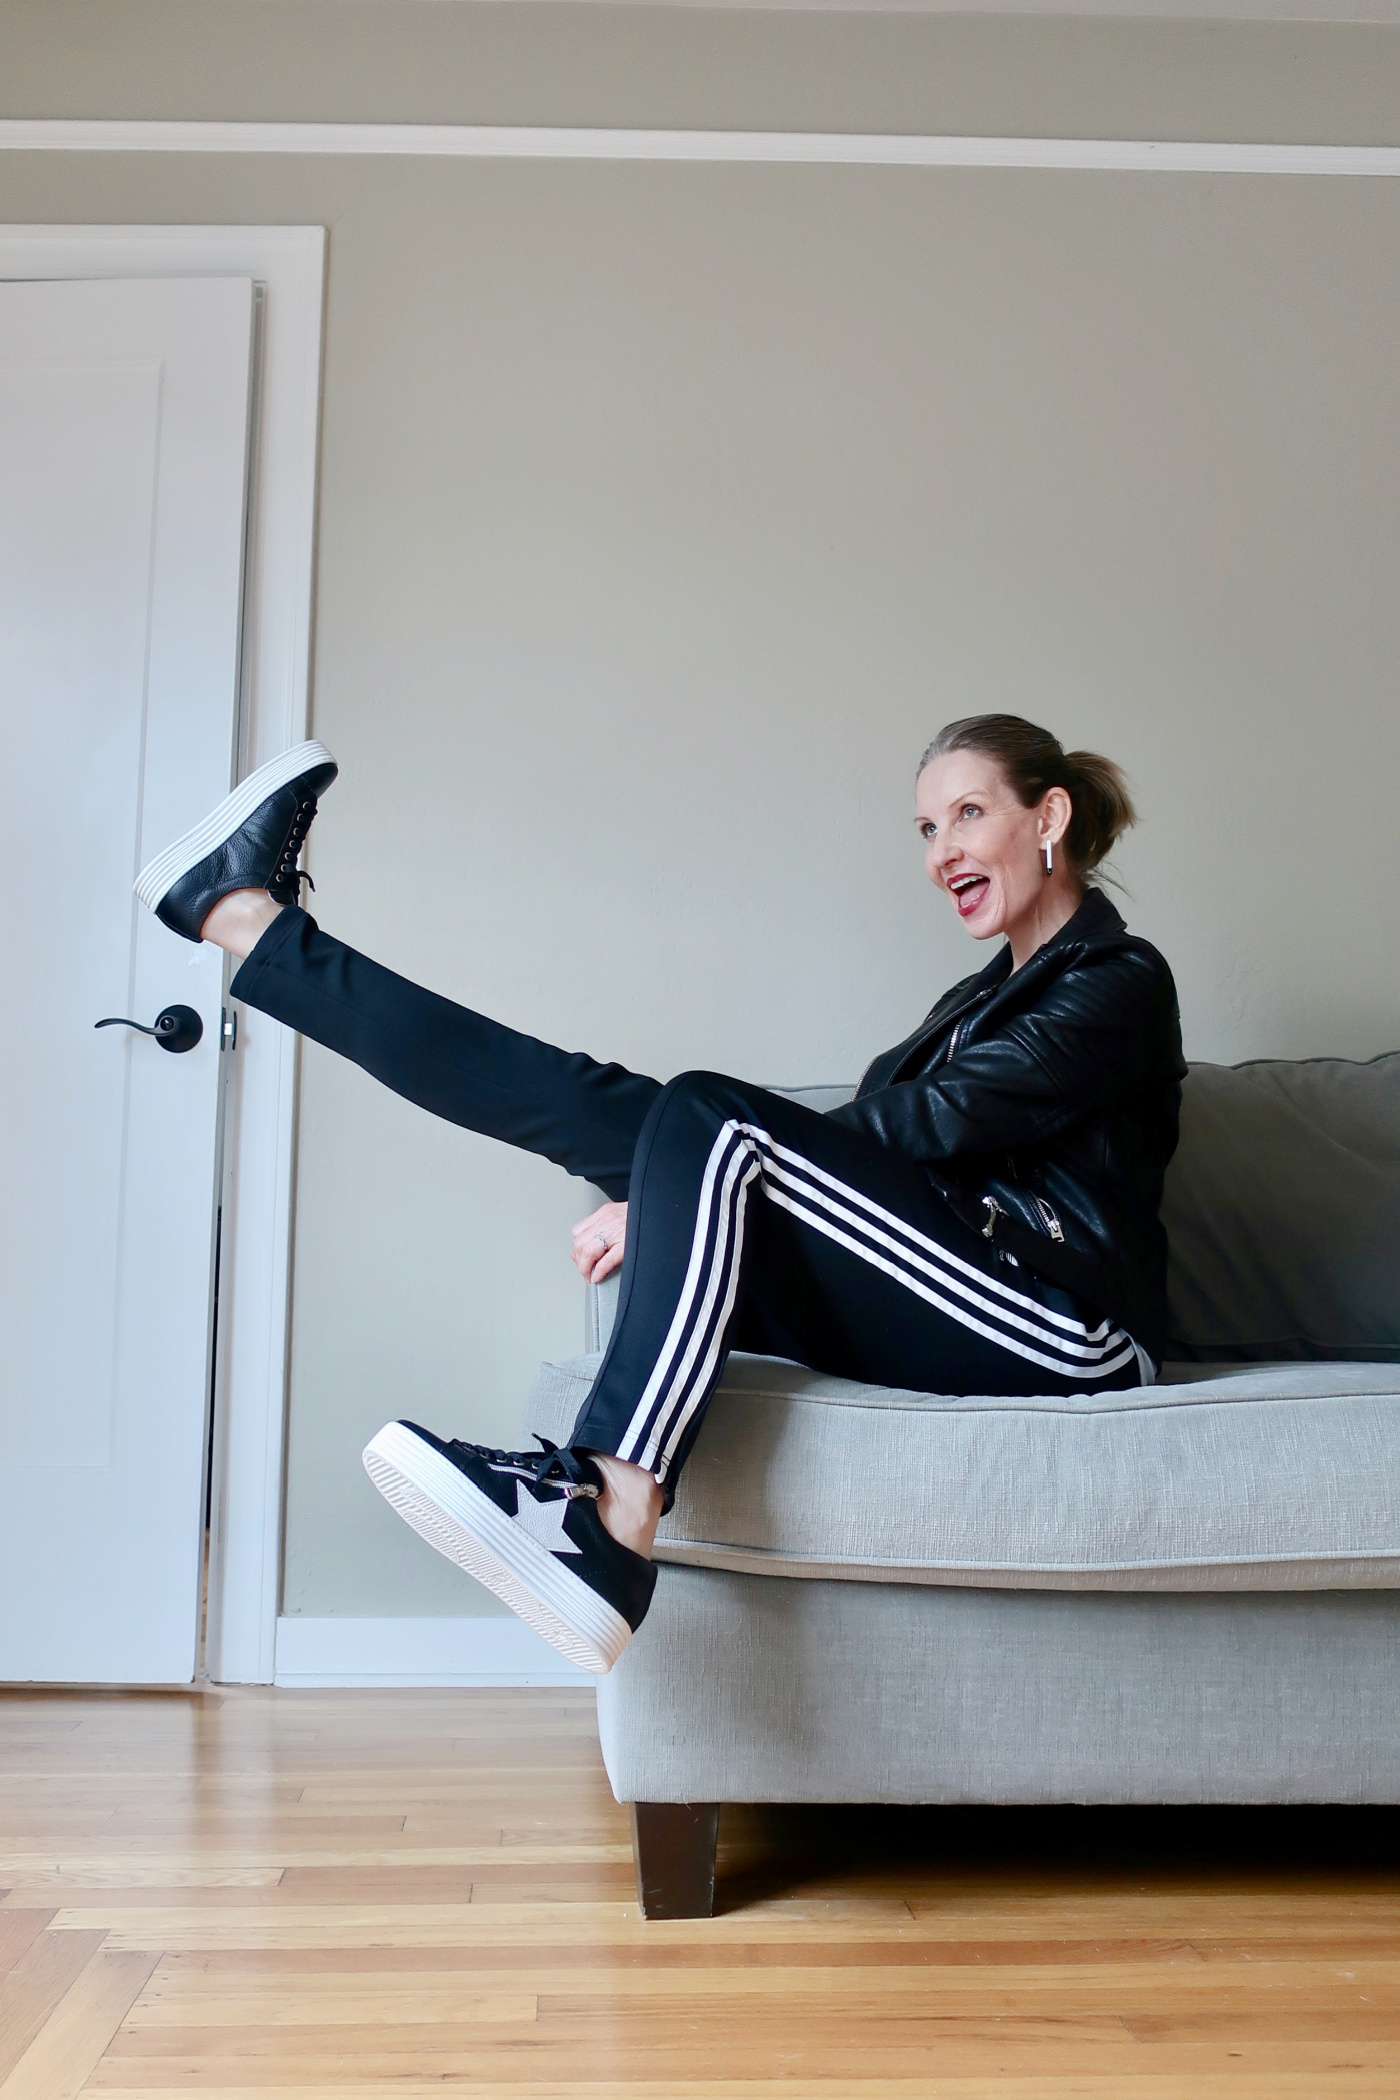 cool kicks, athleisure over 50